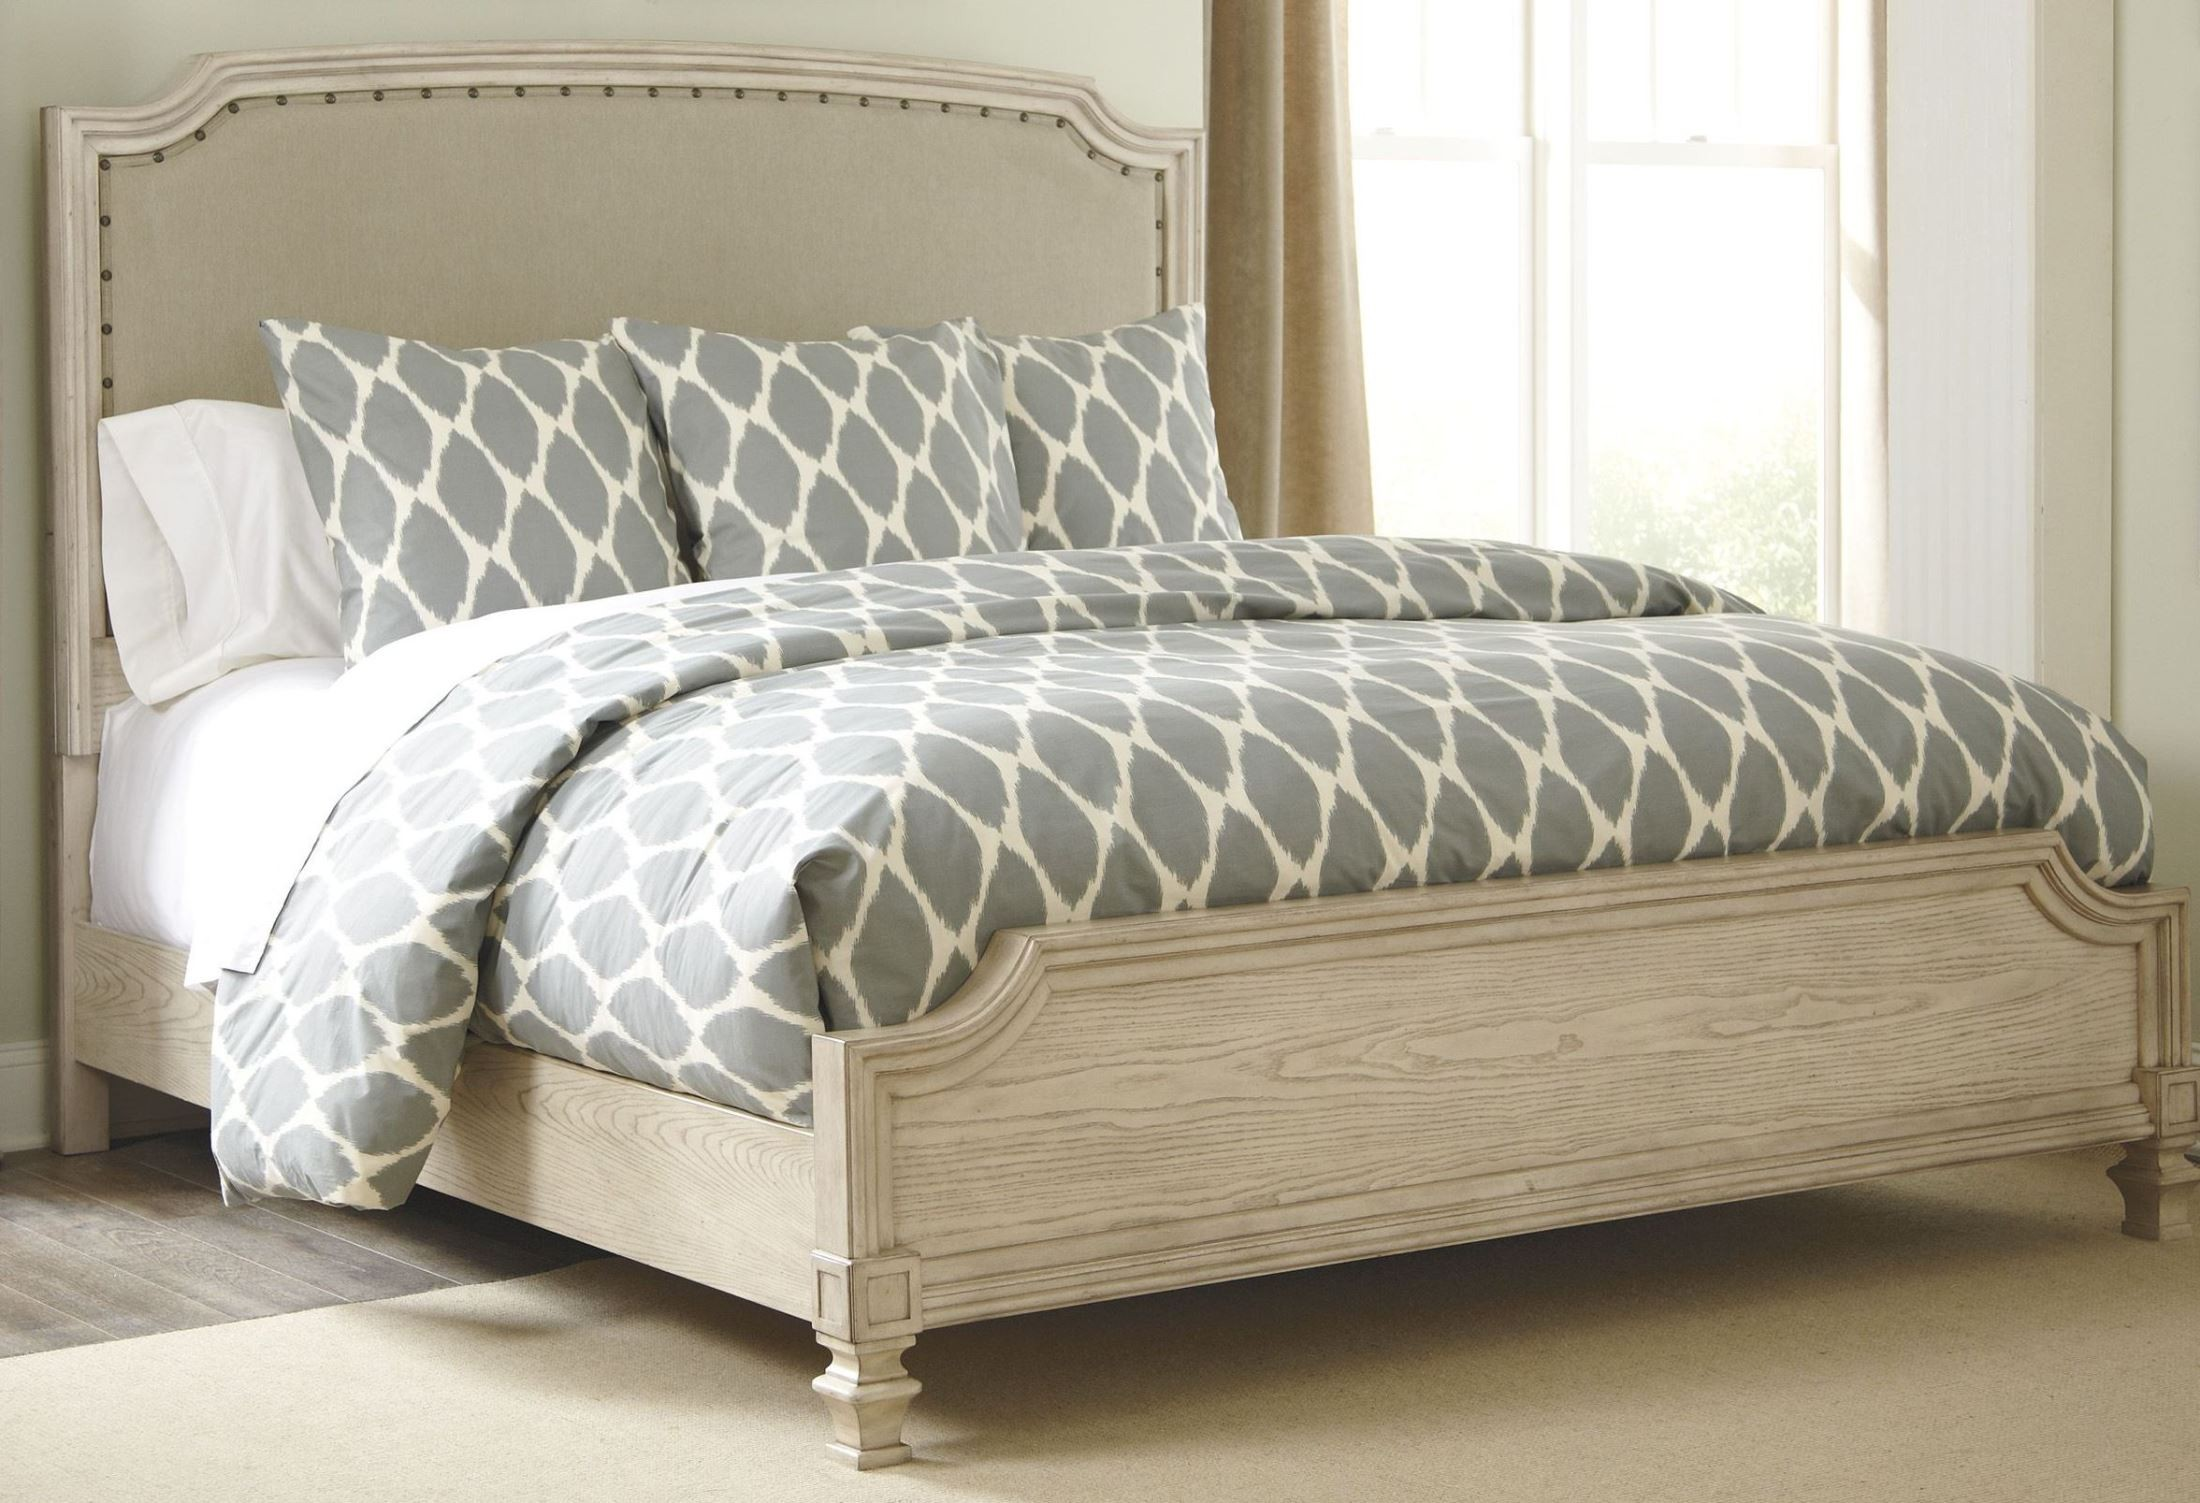 Demarlos queen upholstered panel bed demarlos queen upholstered panel bed685874